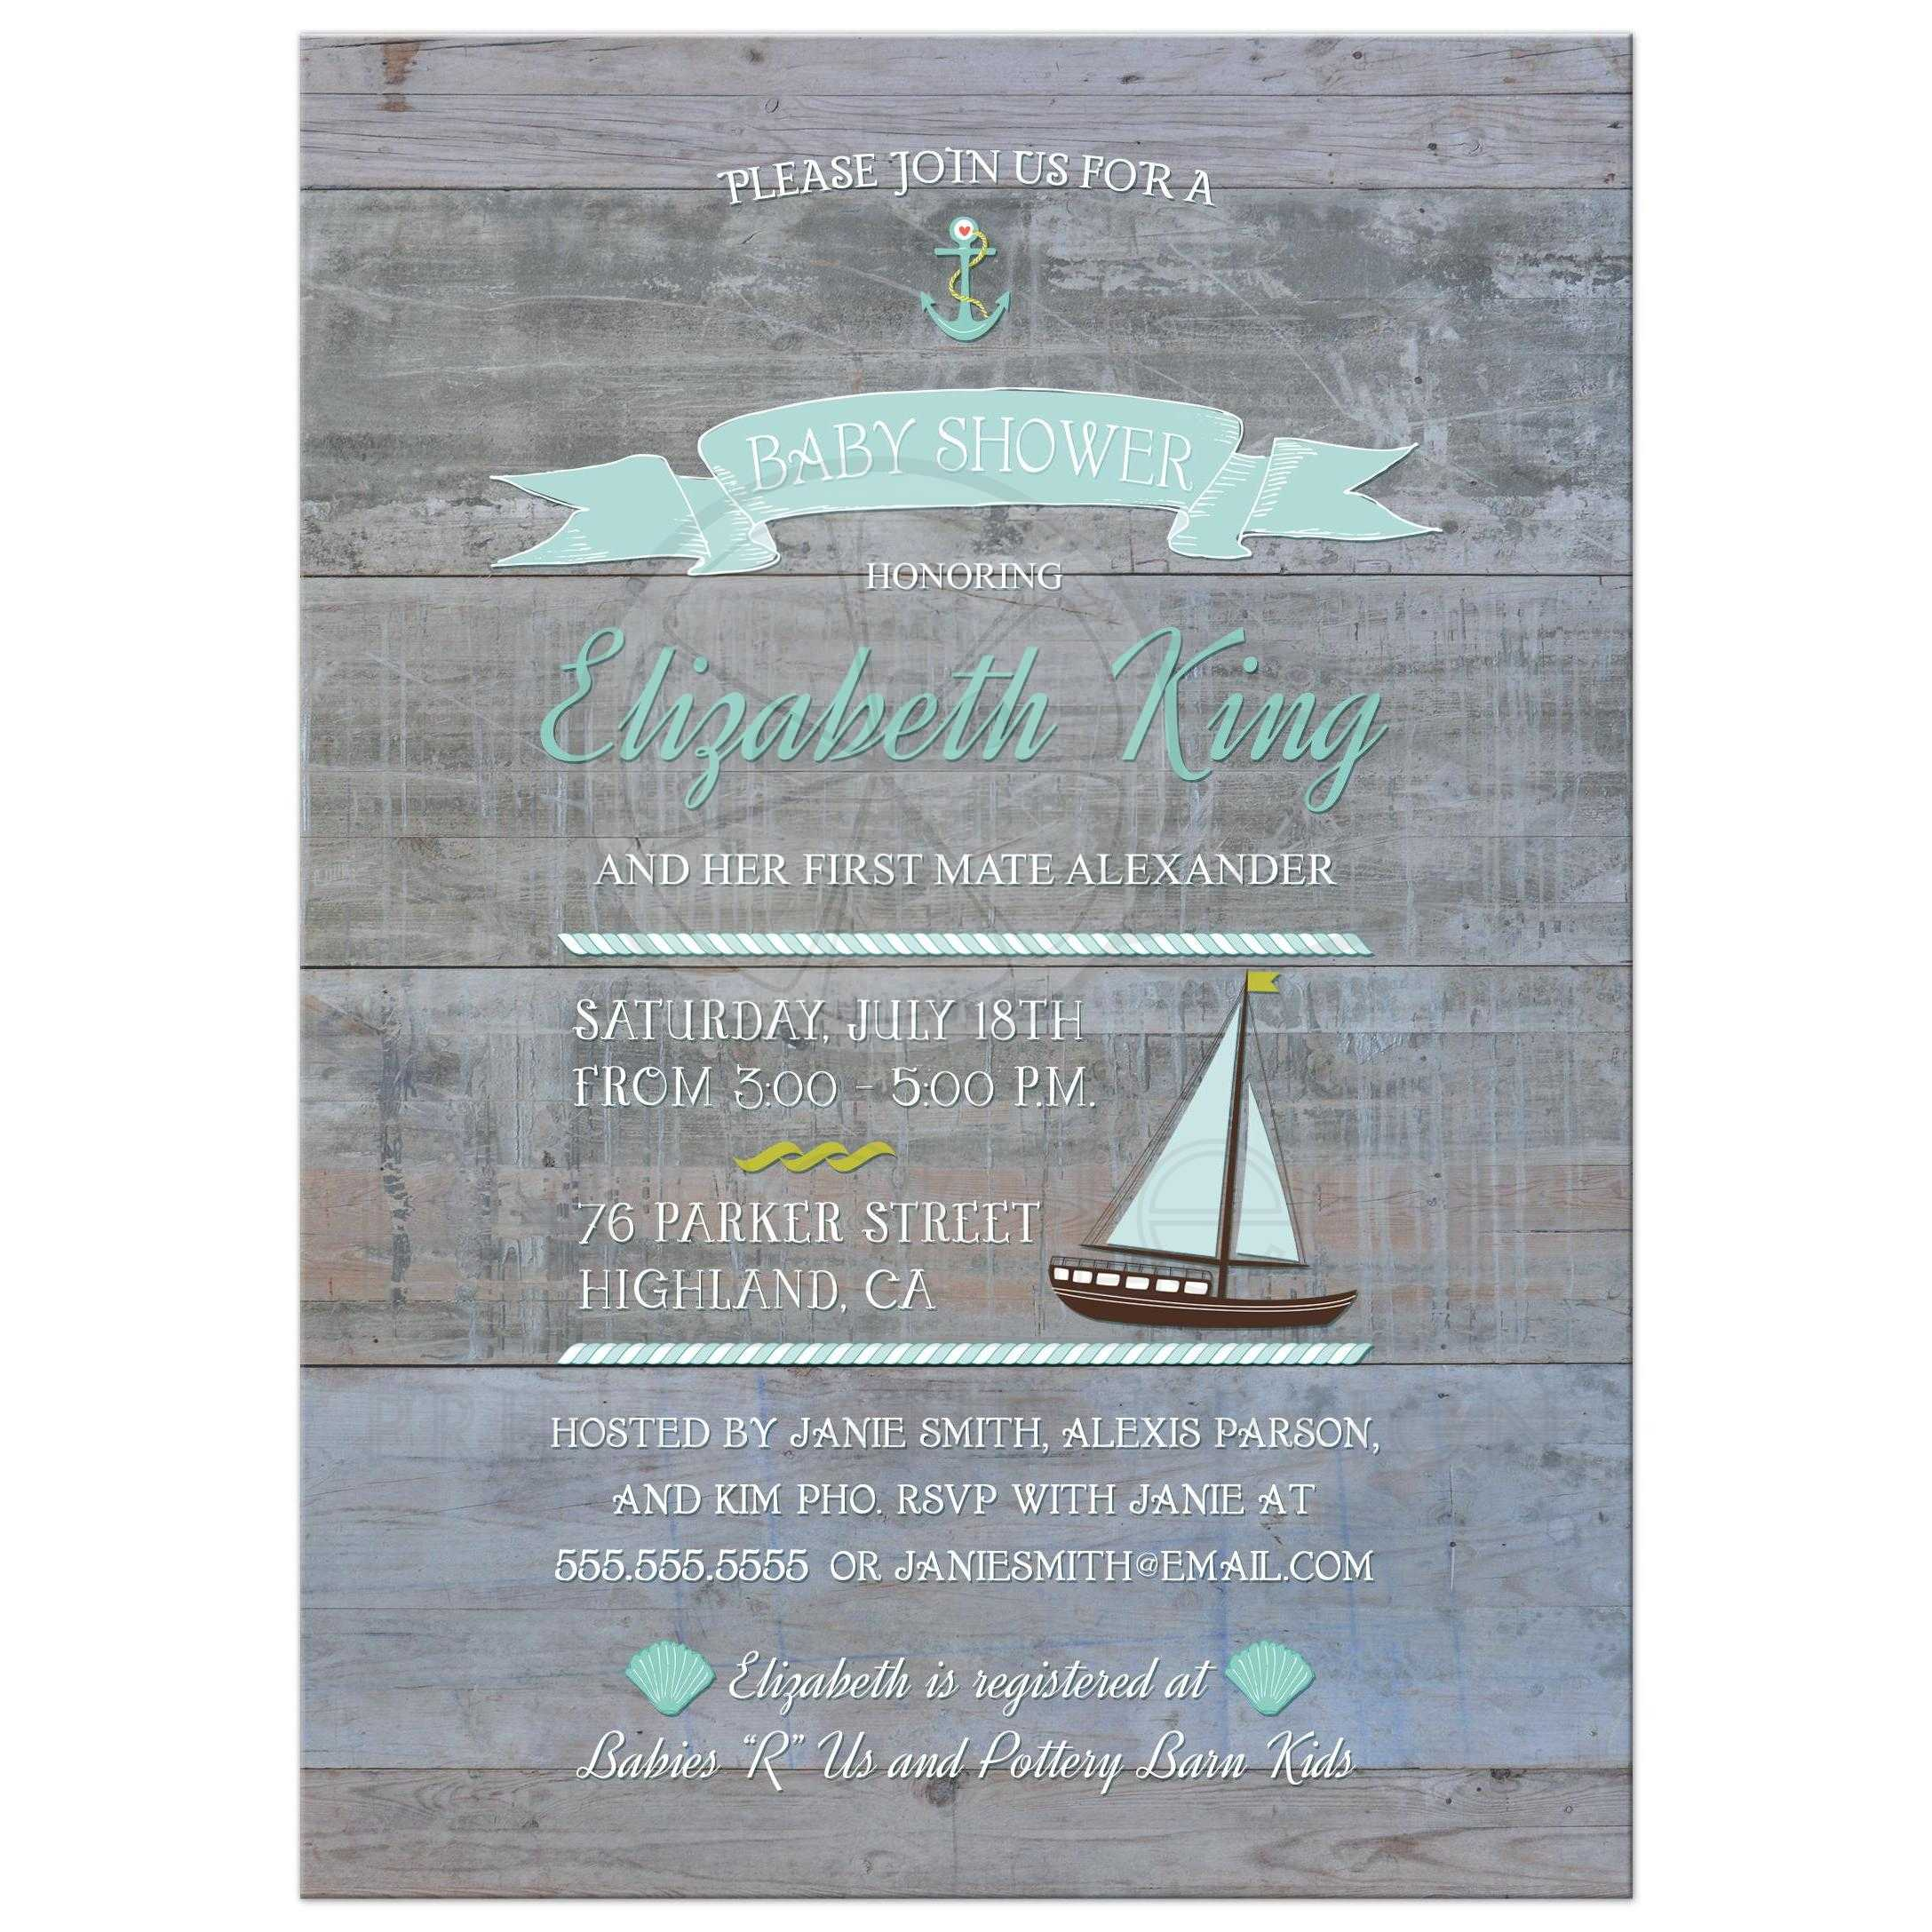 Baby Shower Invitation Rustic Nautical Typography